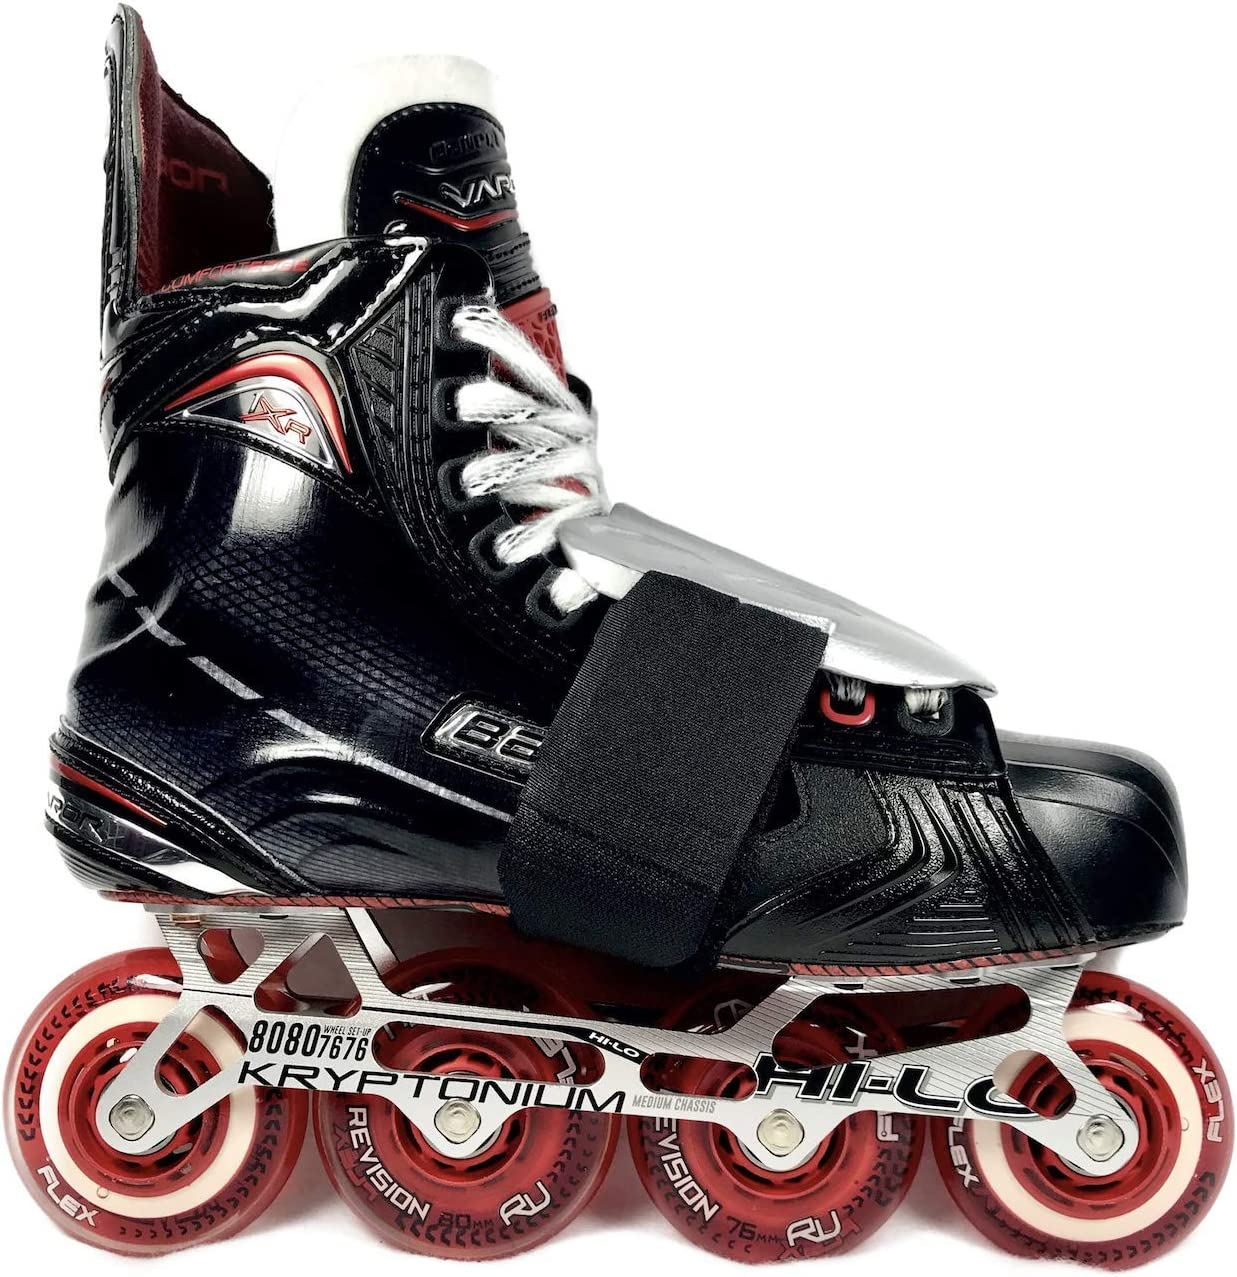 PowerSk8r Skate Weight 1 .lb and 1/2 .lb Pairs : Sports & Outdoors